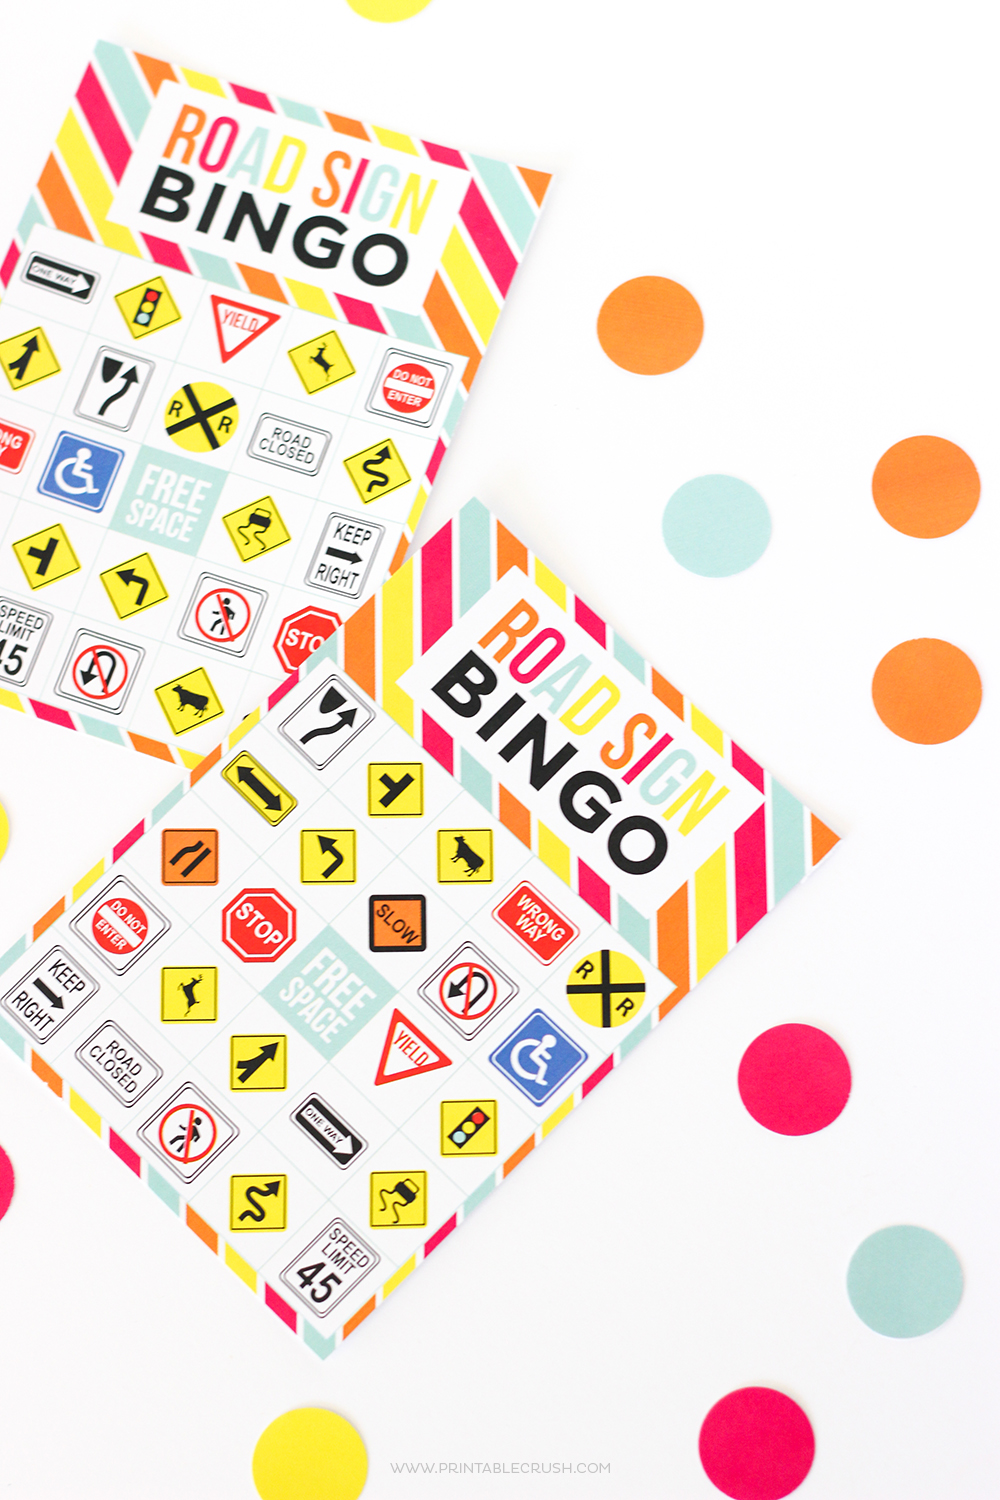 http://printablecrush.com/wp-content/uploads/2016/06/FREE-Printable-Road-Sign-Bingo-3-copy.jpg